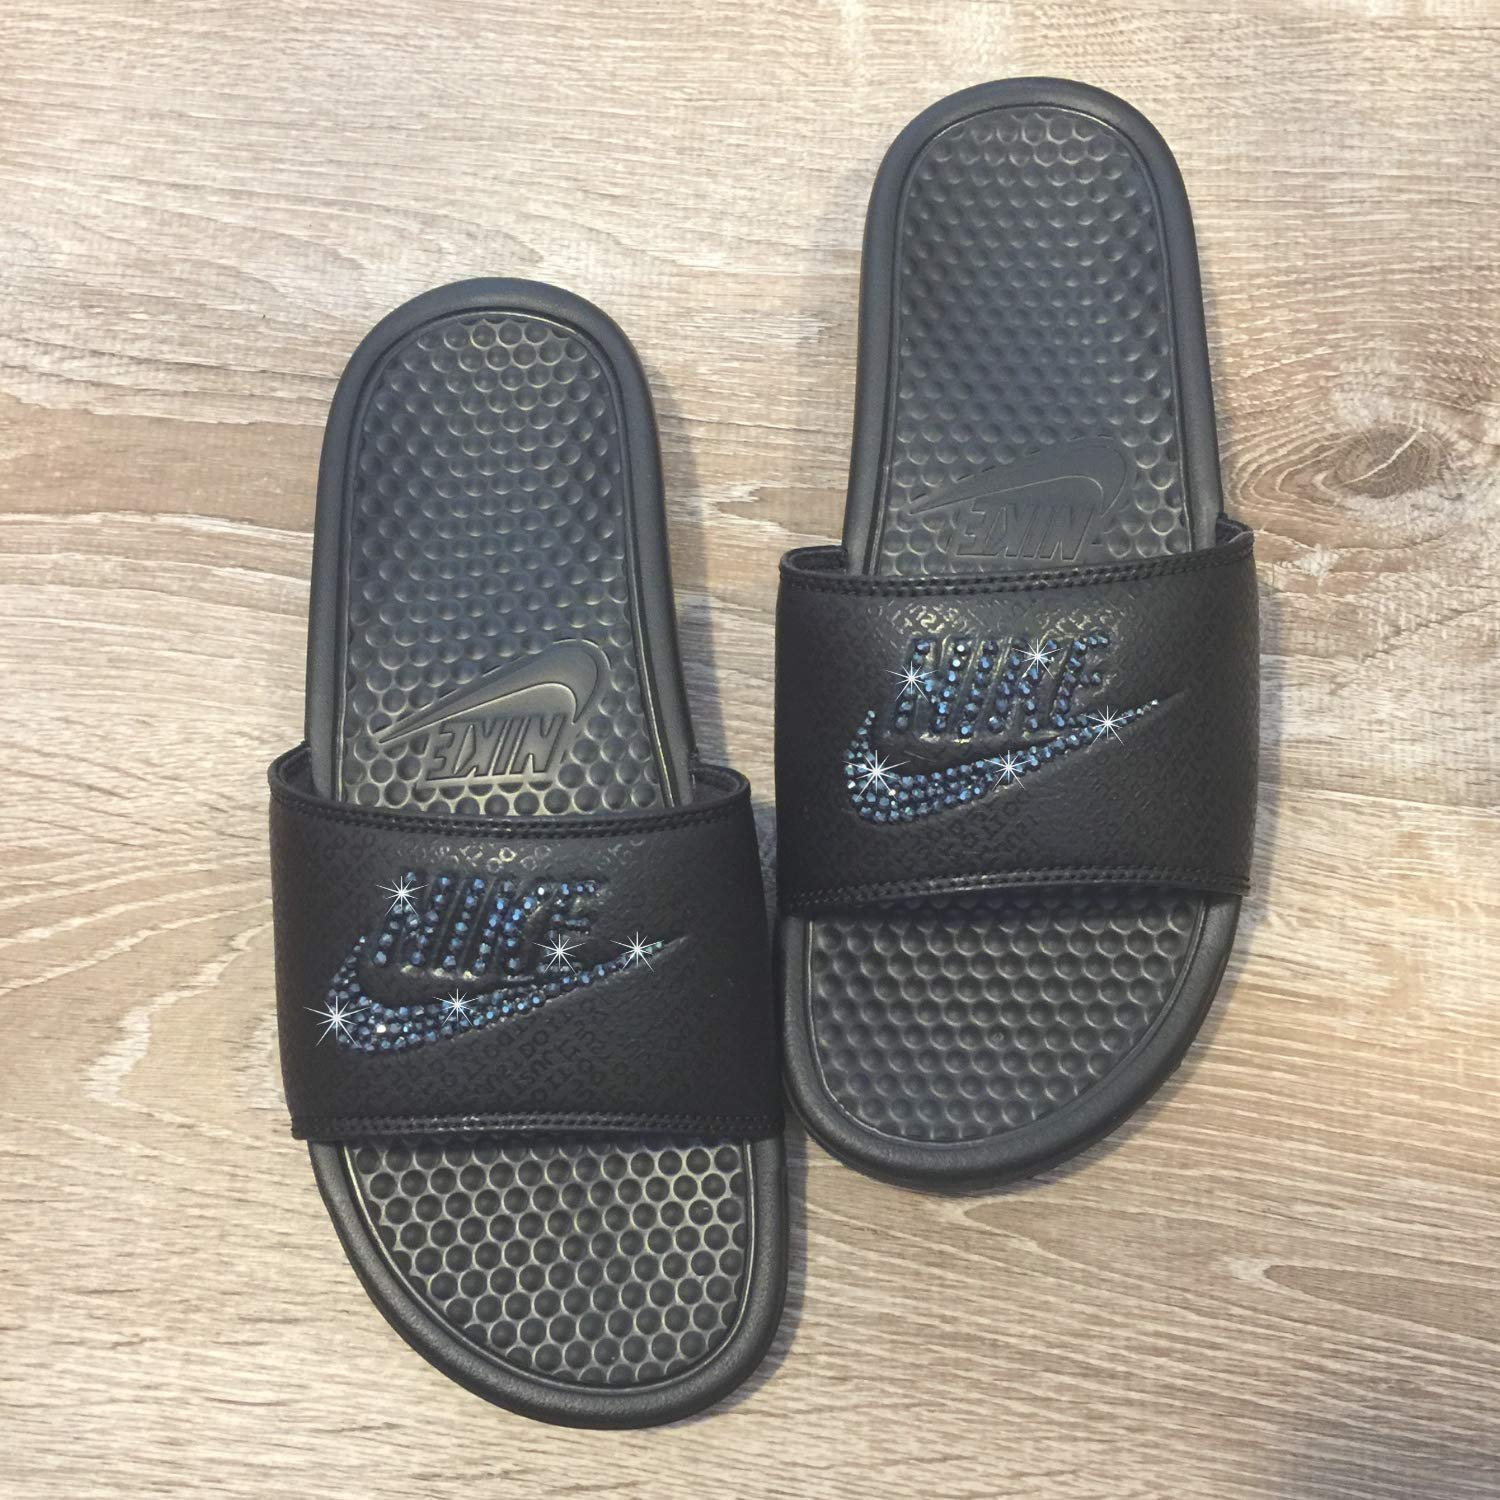 new arrival 2c7ee 179bb Amazon.com  Bling NIKE SLIDES with Swarovski Crystals ALL BLACK Women s  NIKE Benassi JDI Slides Custom Bedazzled Slip On Sandal Shoes  Handmade